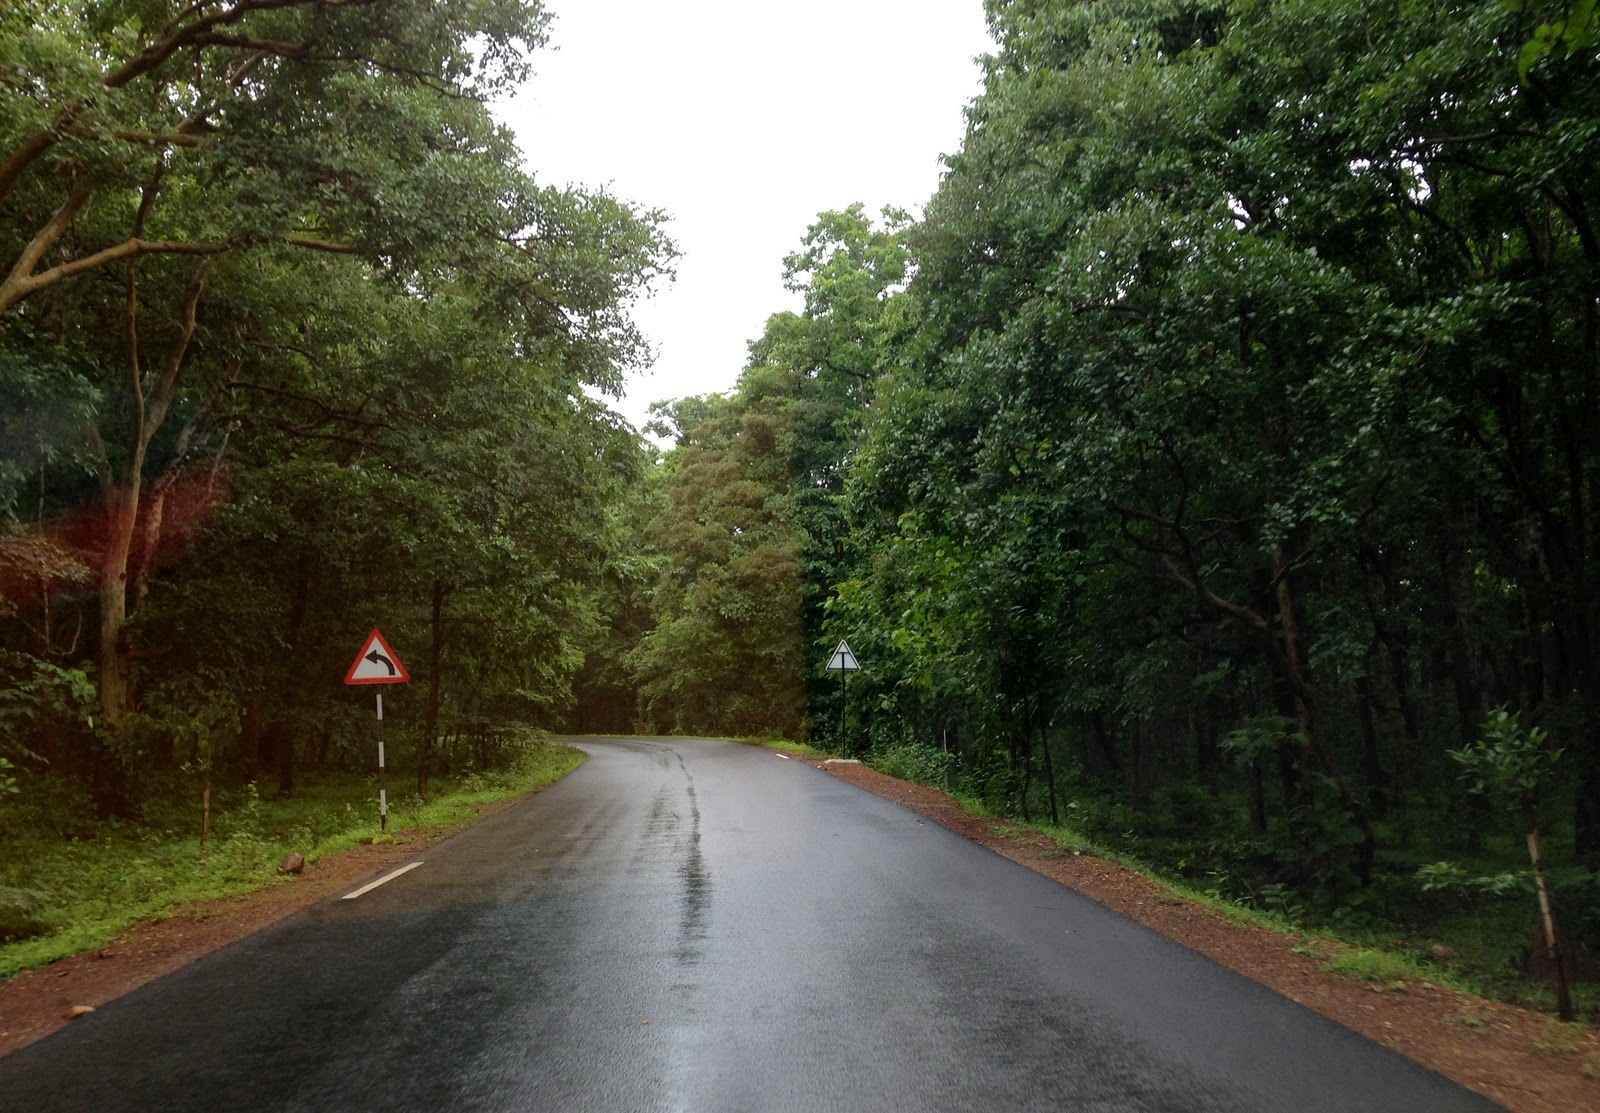 Rains in forest means clear tarmac and lovely greenery!